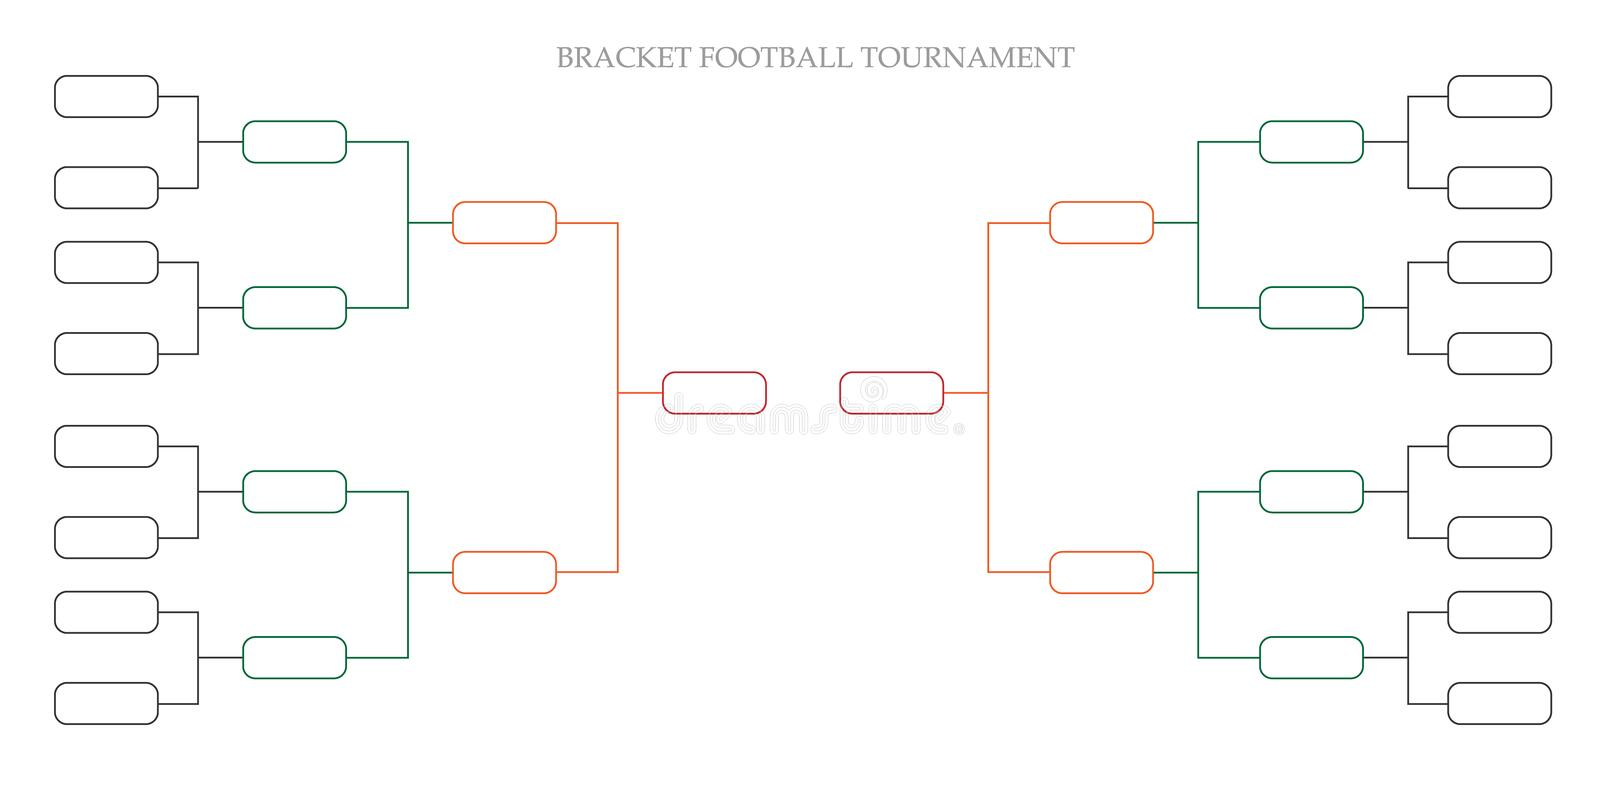 Bracket football tournament vector illustration